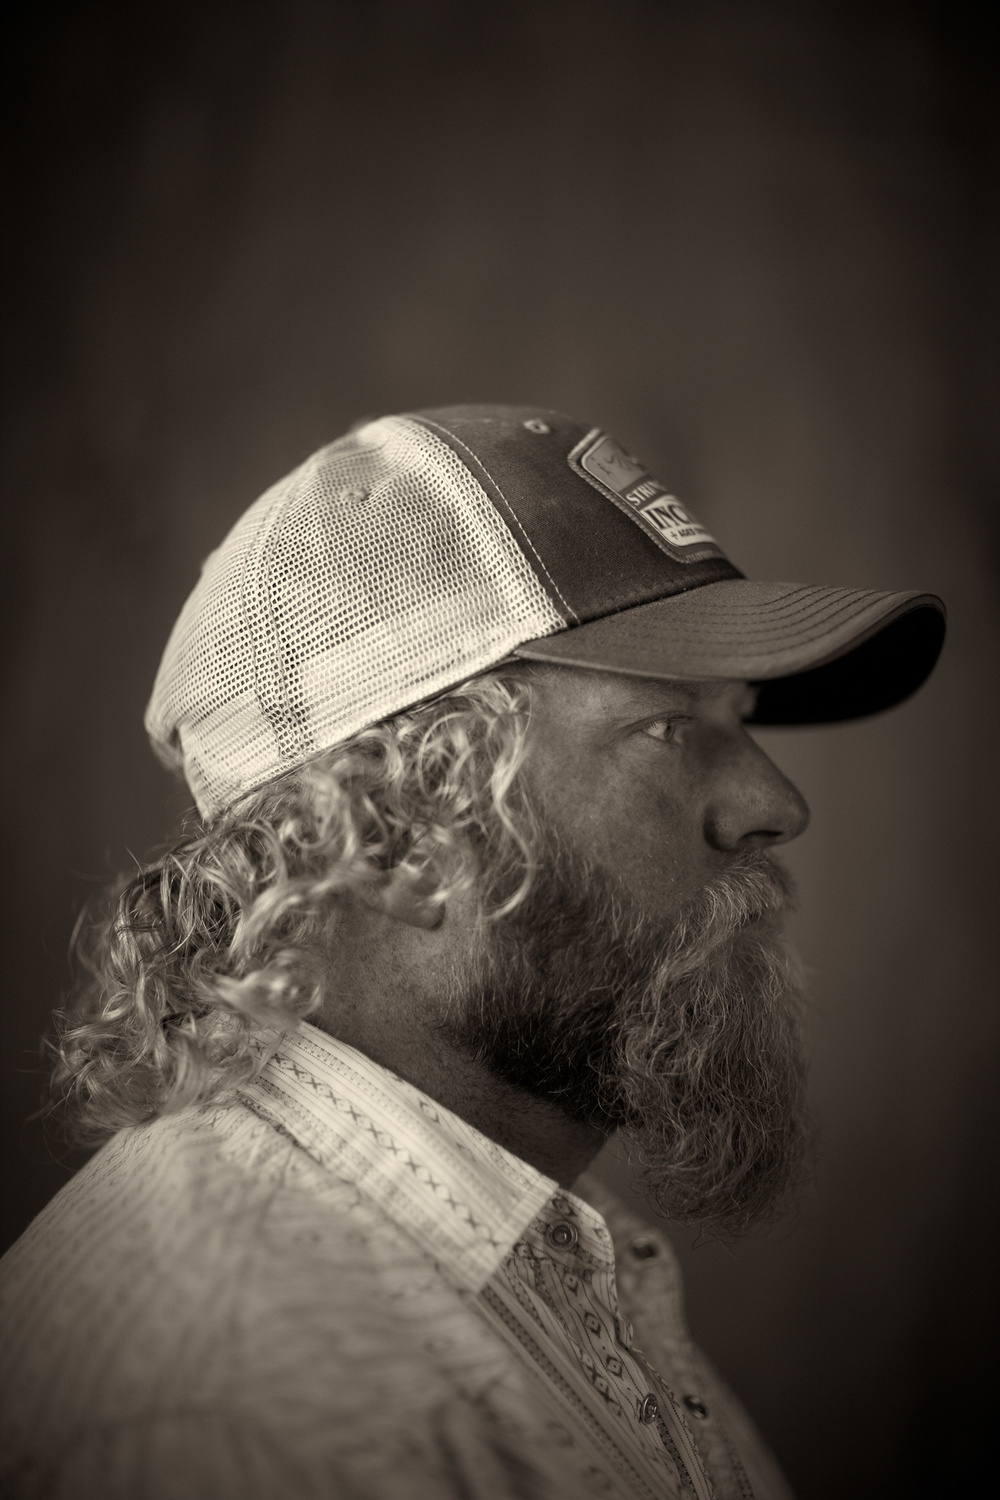 Portrait Photography Derek Israelsen Trucker Profile